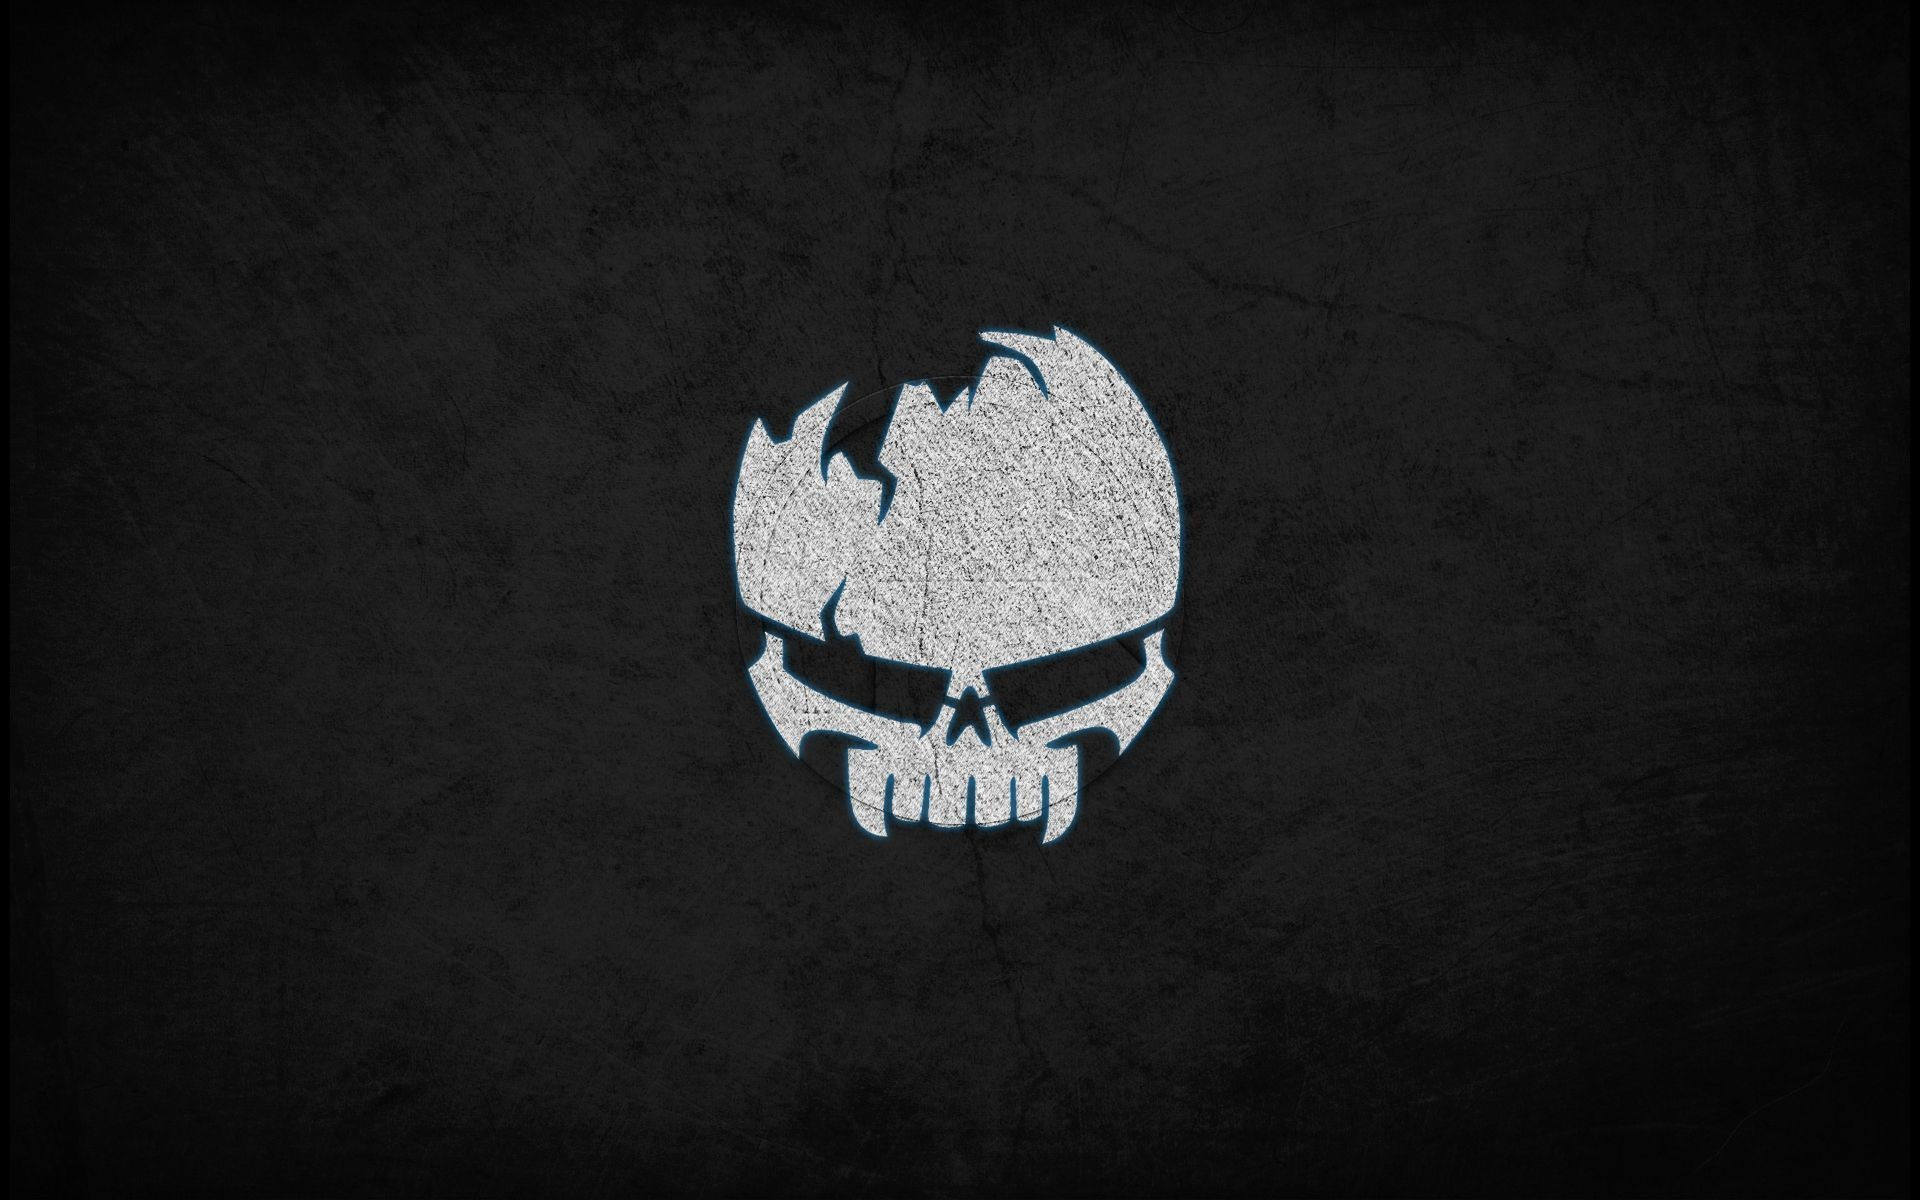 1920x1200 Free Skull Wallpapers For Android. Top images